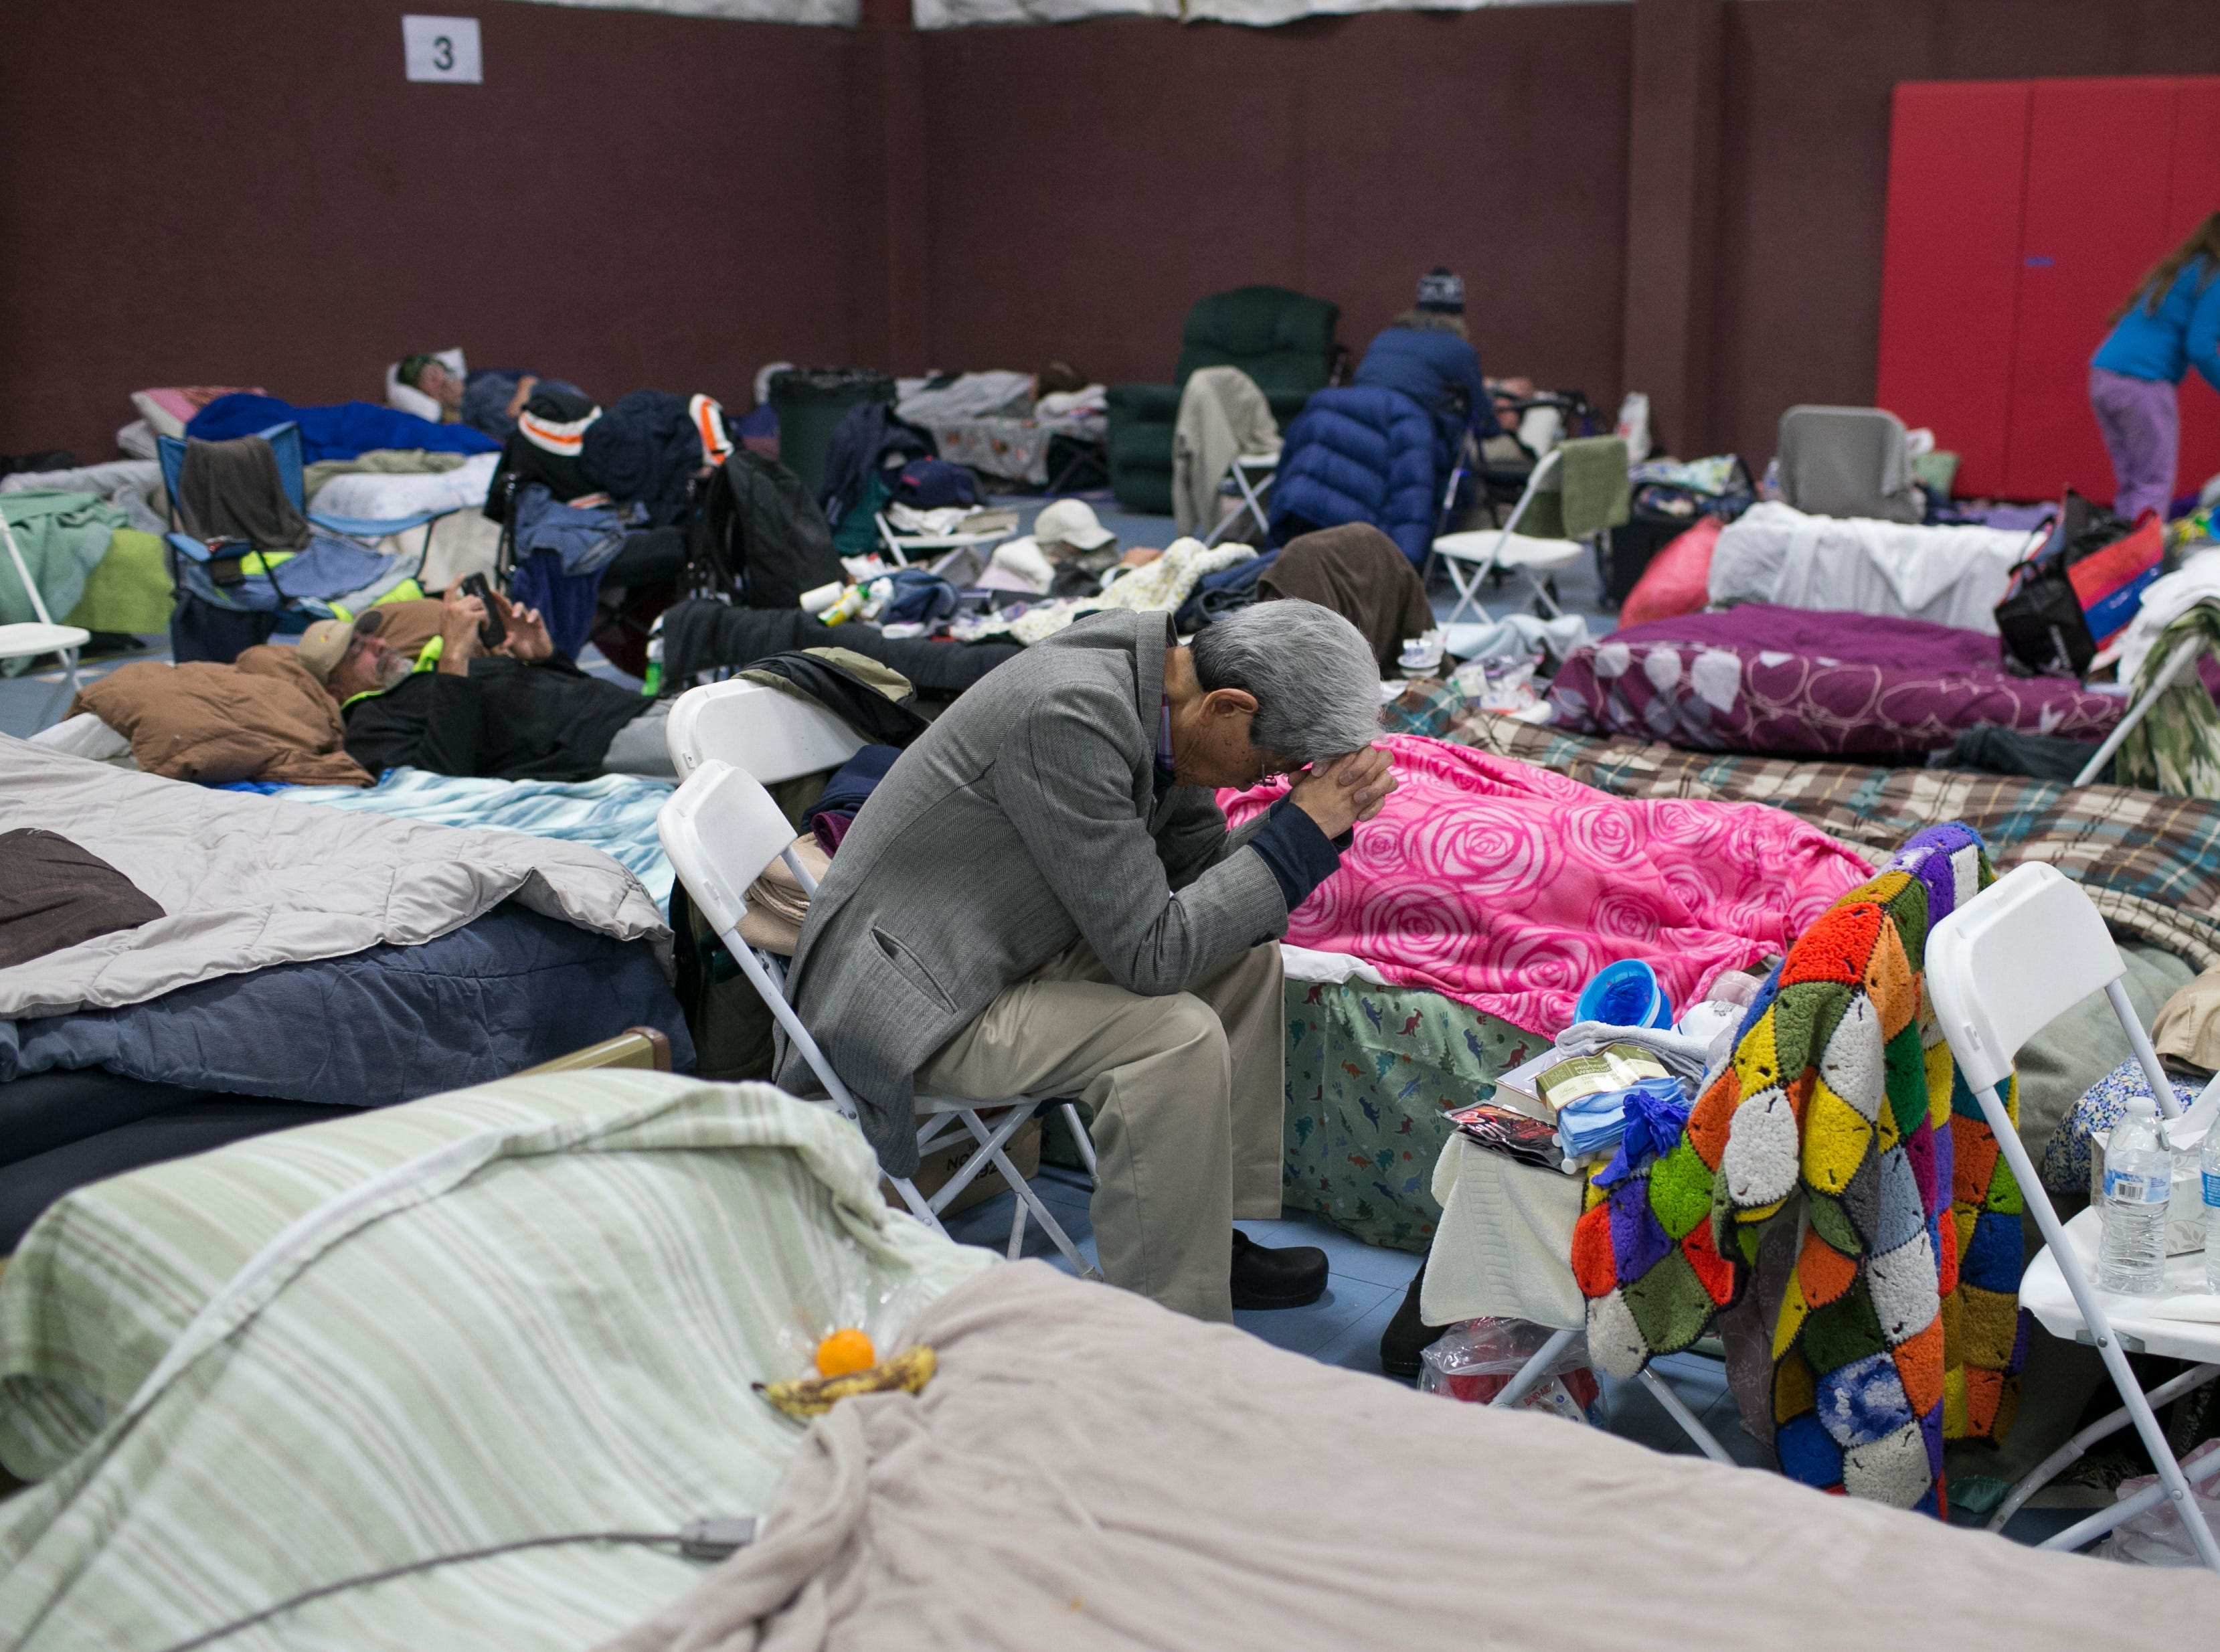 A Paradise evacuee rests with his head on his hands at the East Avenue Church Shelter in Chico, California on November 15, 2018. The shelter was full less than a week after the Camp Fire destroyed the town of Paradise, displacing thousands and killing more than 75.